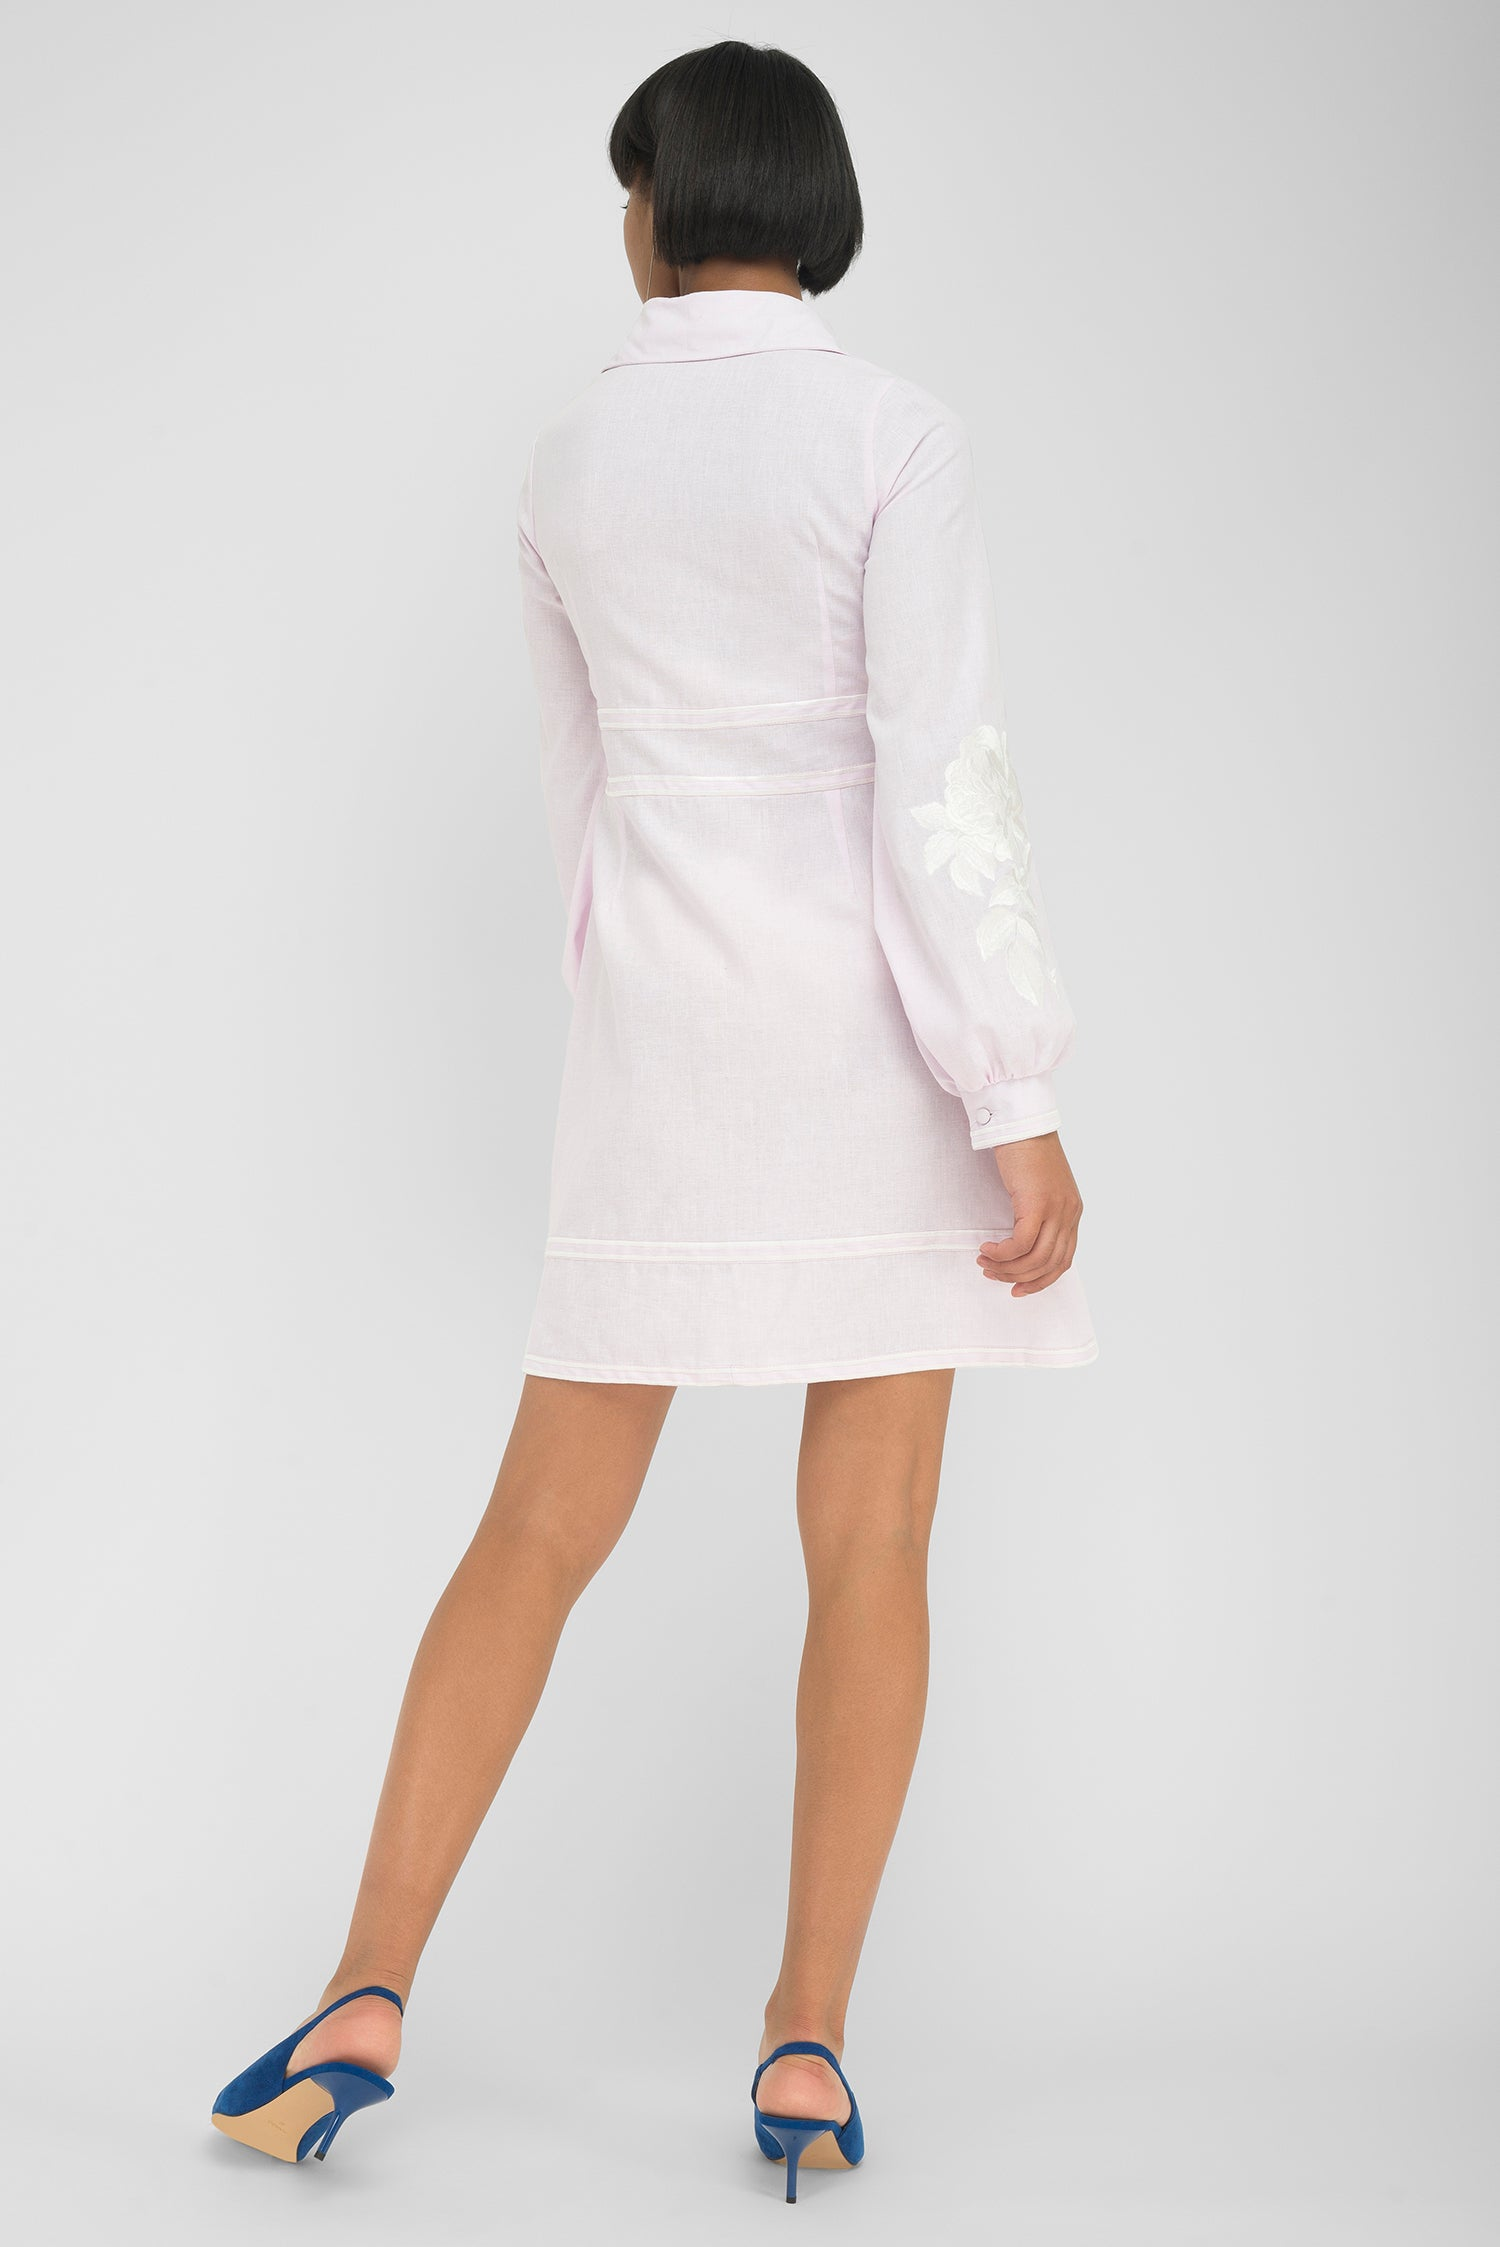 FANM MON SOMA Light Pink Linen Collar Neck White Embroidered Mini Dress